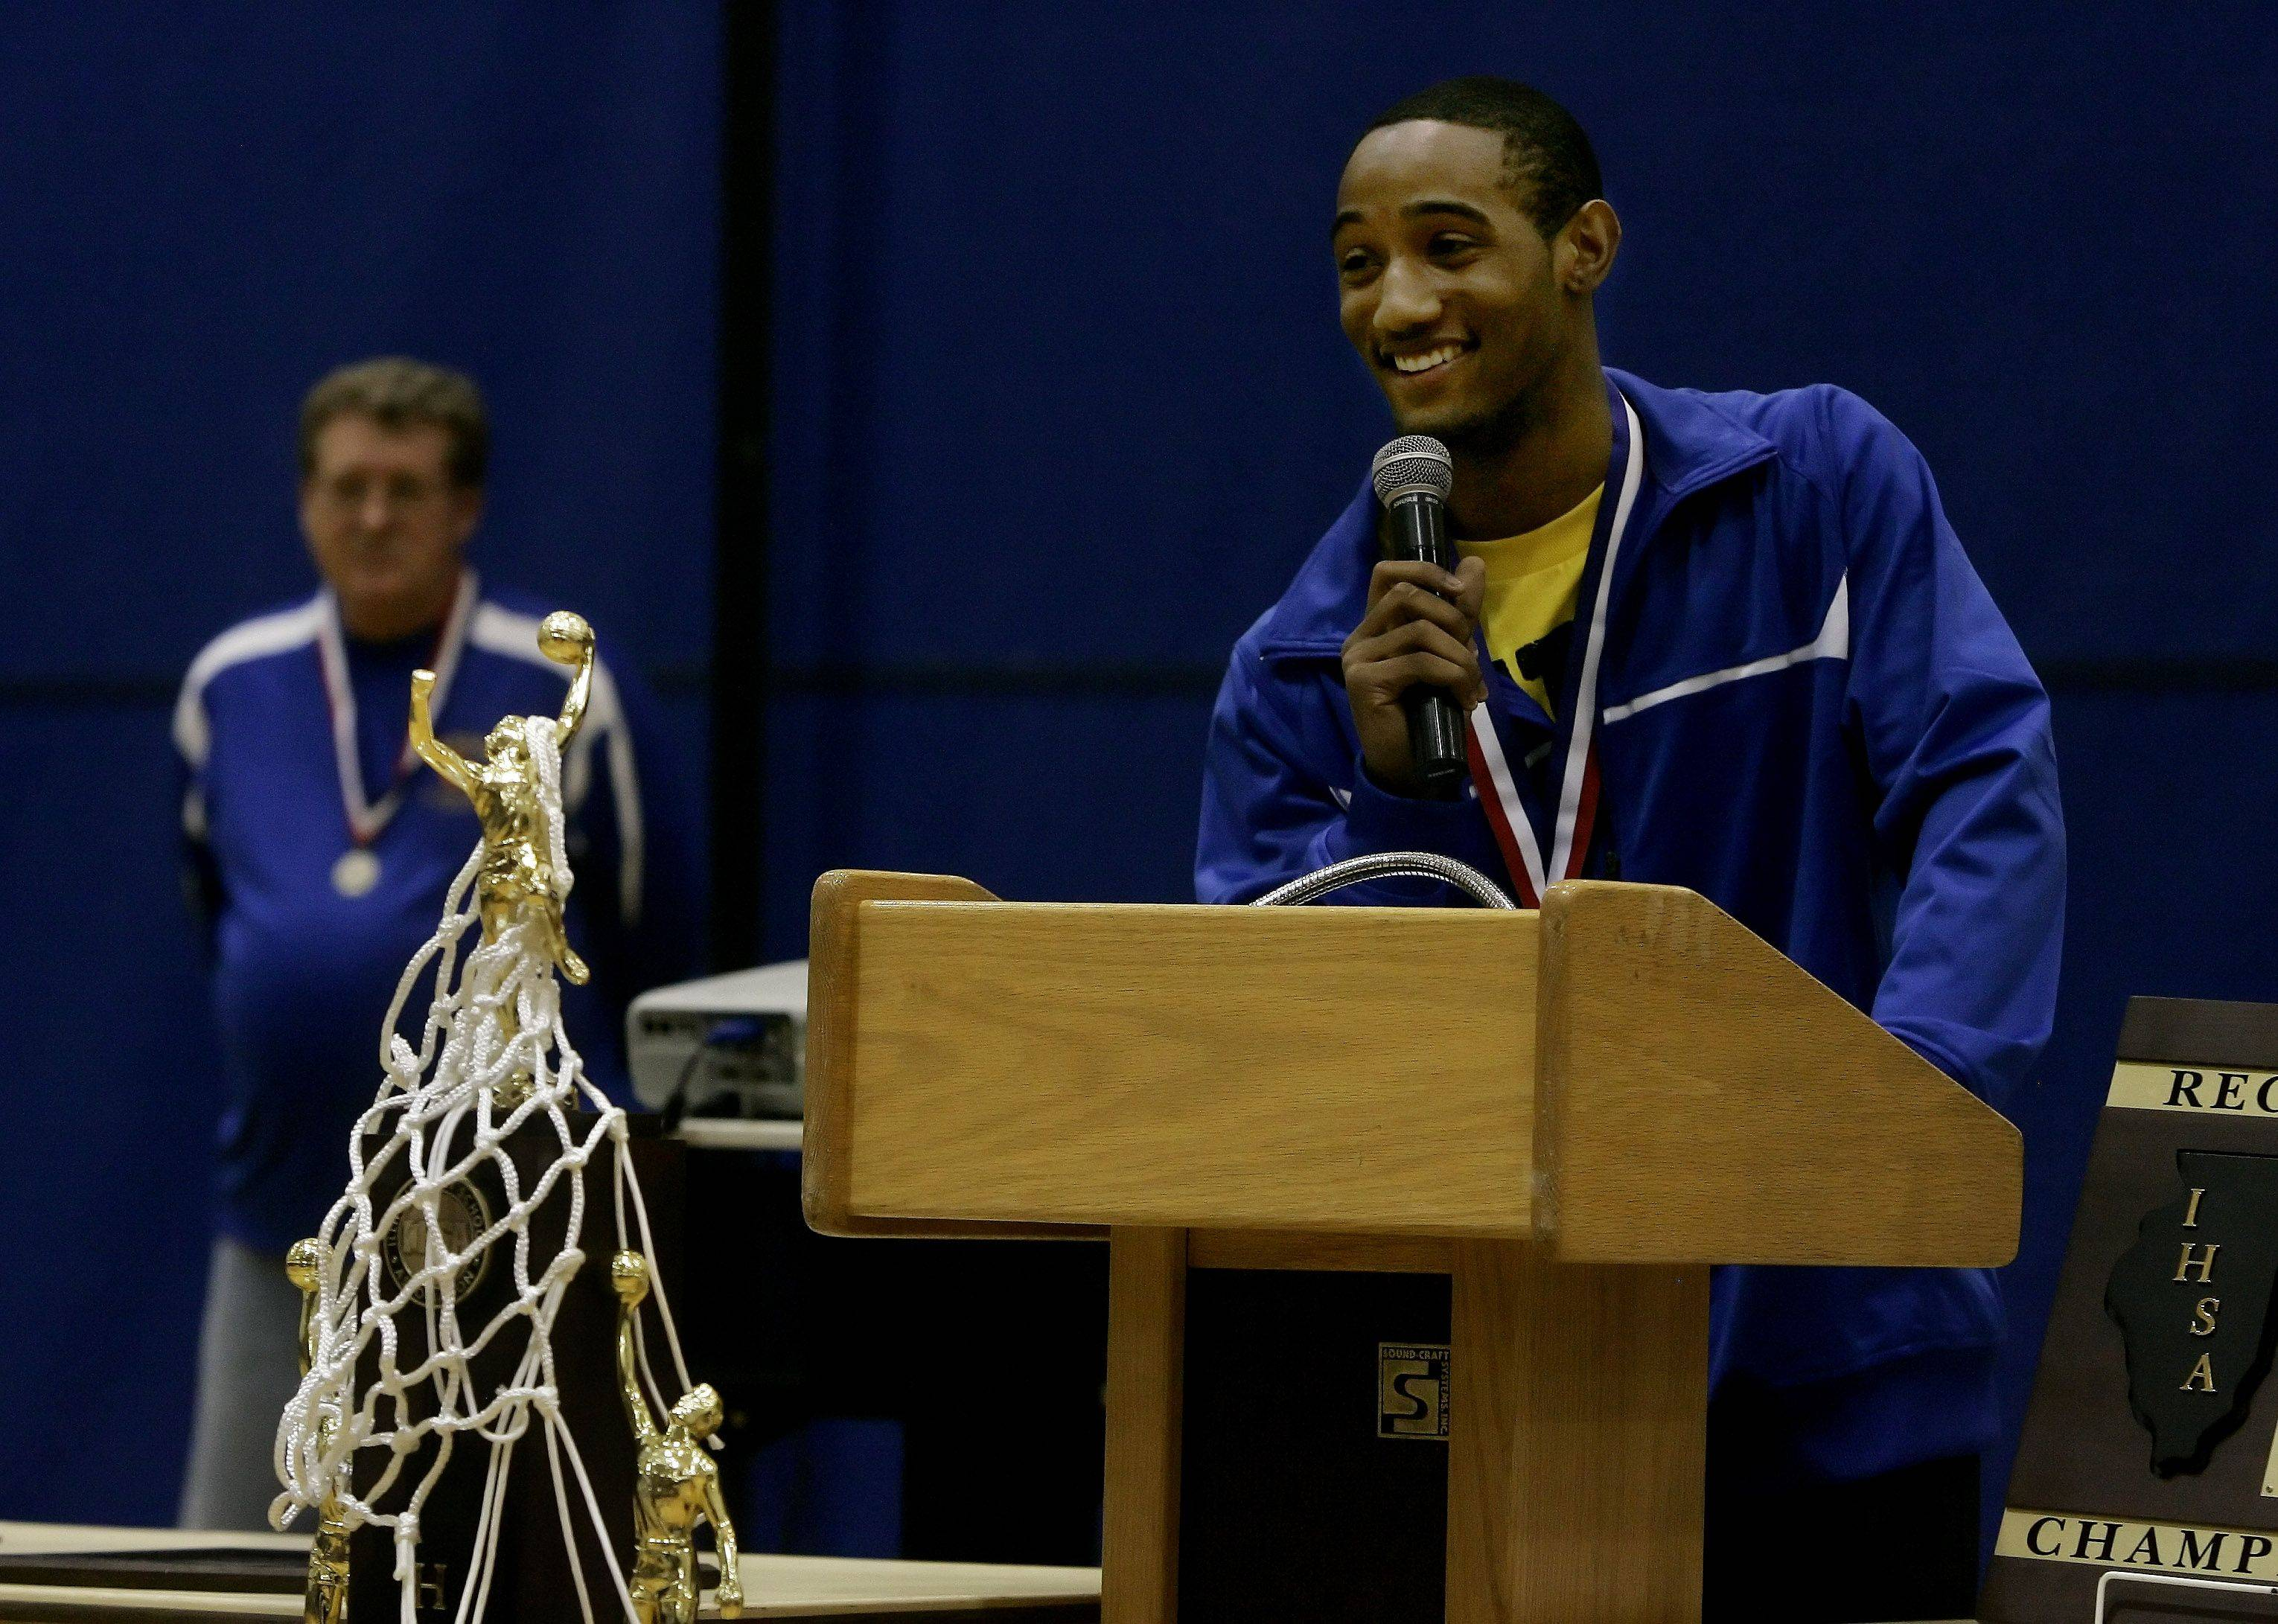 Basketball player Jameris Smith thanks the fans as the Warren Township High School boys basketball team returns to the school in Gurnee Sunday for a pep rally. Warren coach Chuck Ramsey stands in the back.